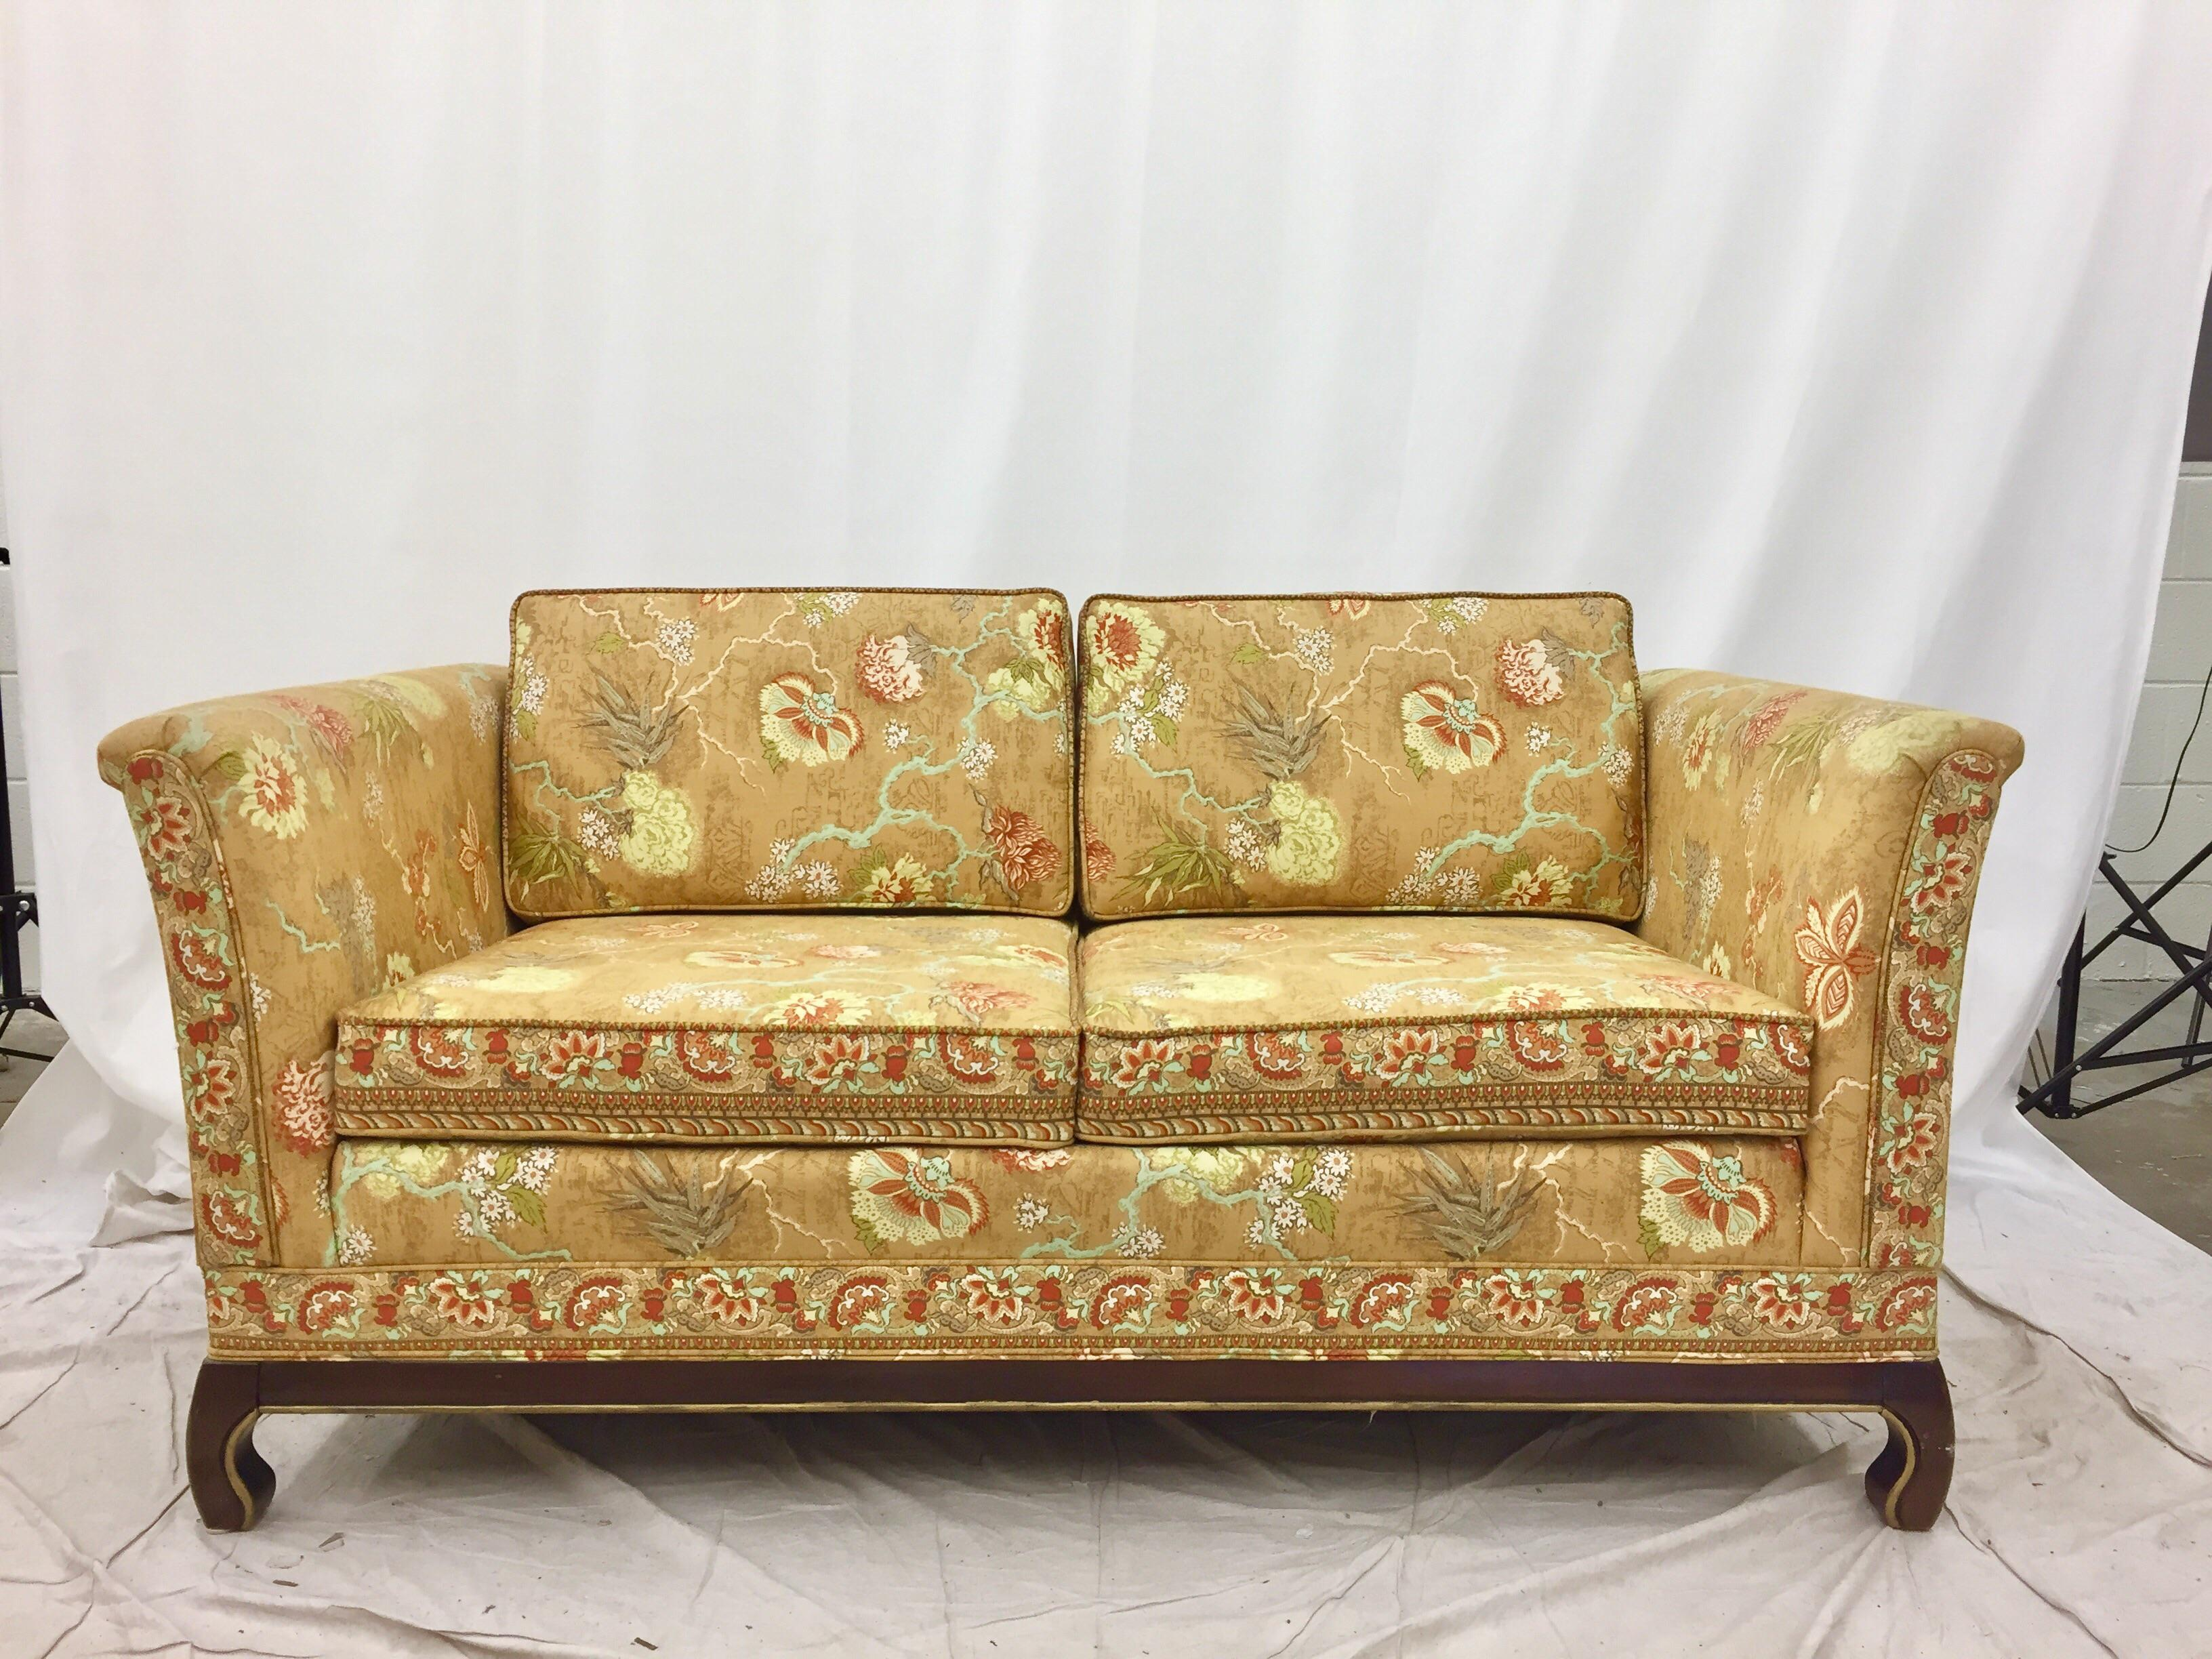 midcentury modern broyhill ming style loveseat image 4 of 10